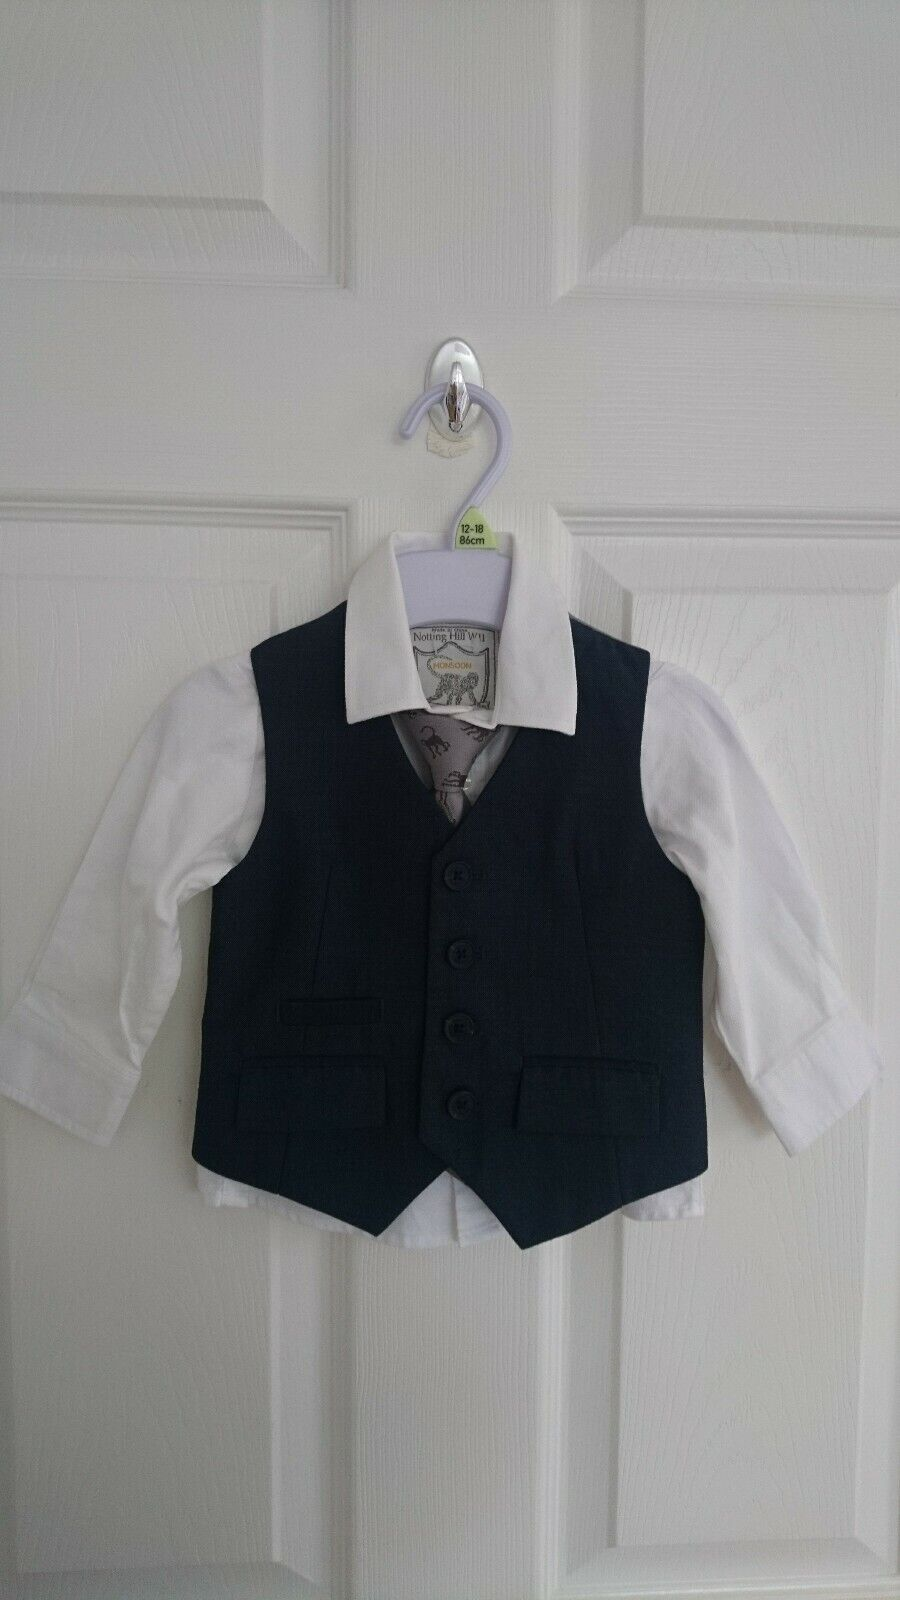 Monsoon Notting Hill W11 Baby Boys 3 Piece Suit 6-12 Months (only worn once)